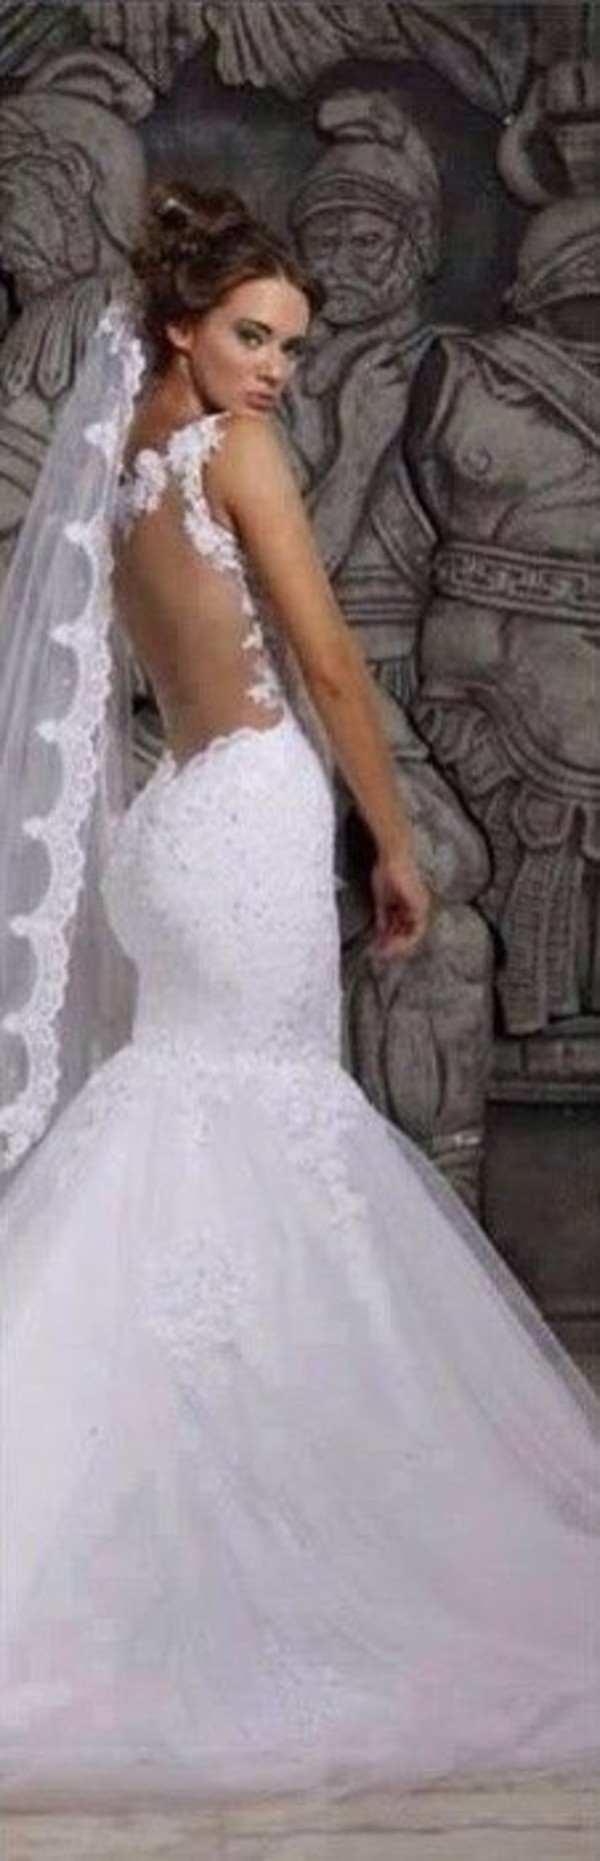 dress lace wedding dress mermaid